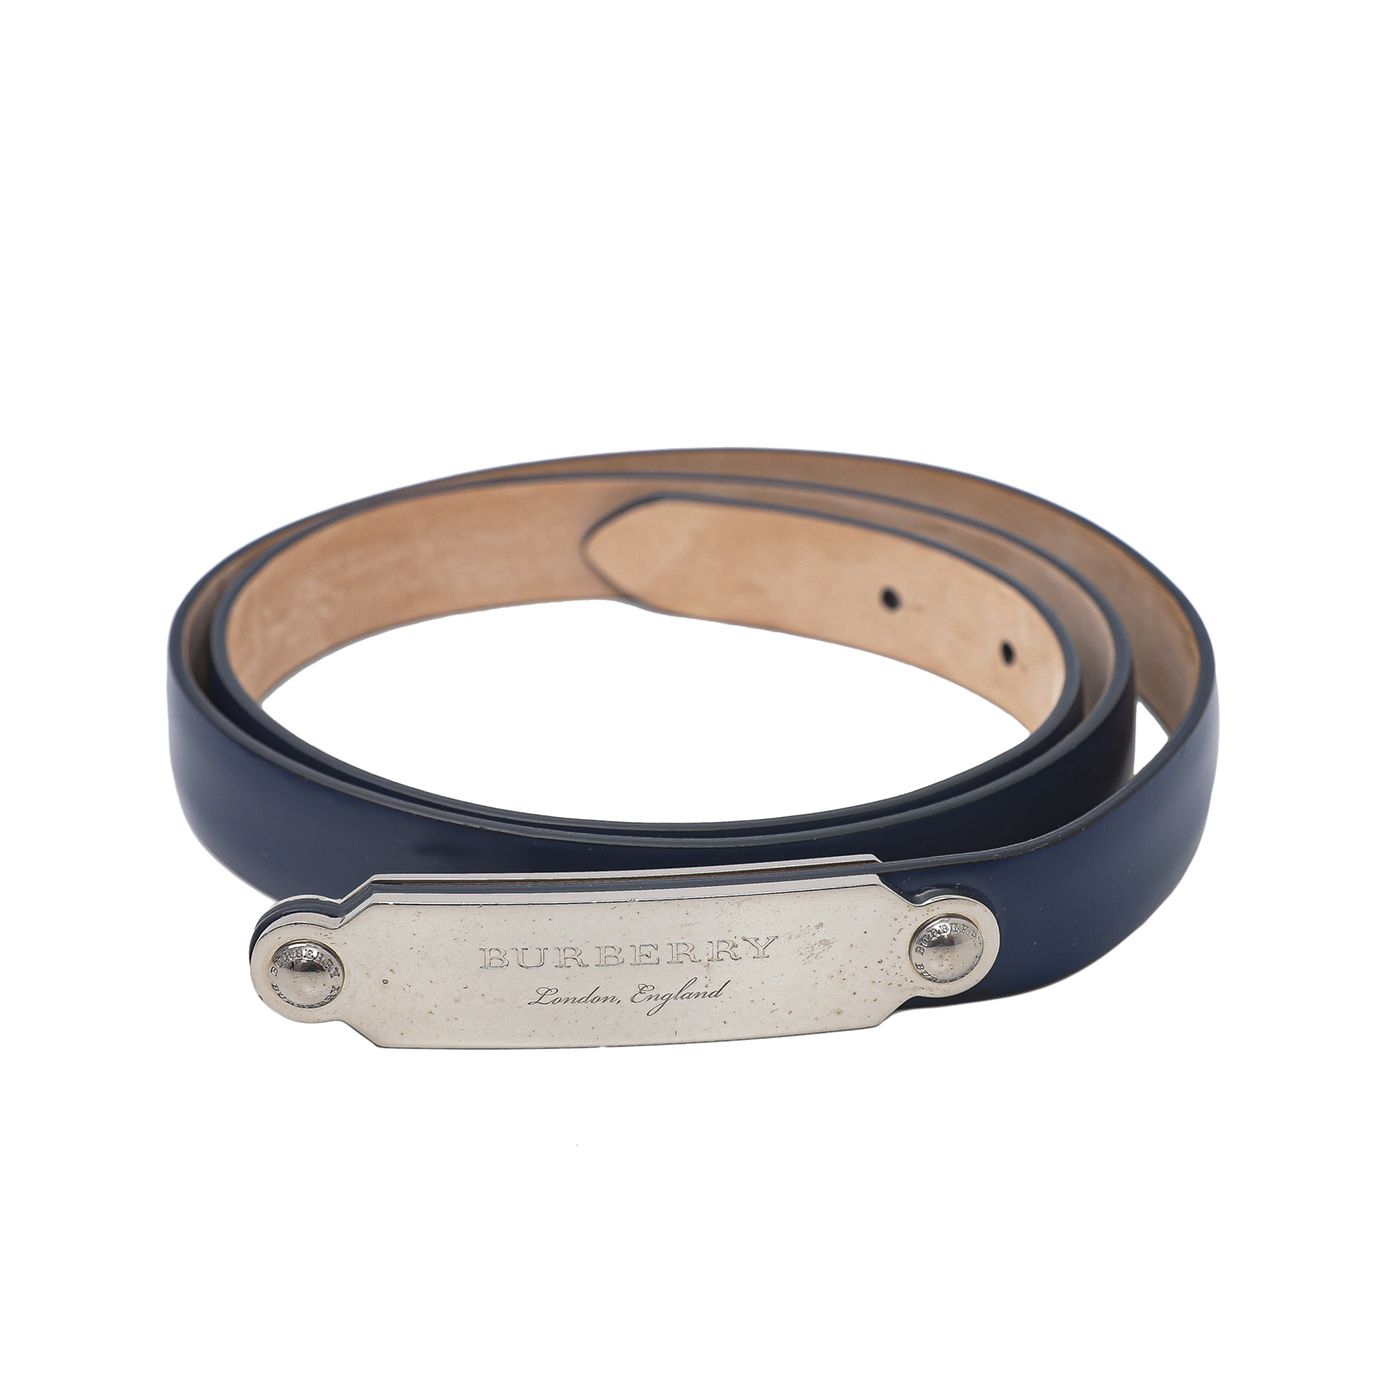 Burberry Navy Blue Reese Slim Belt 34